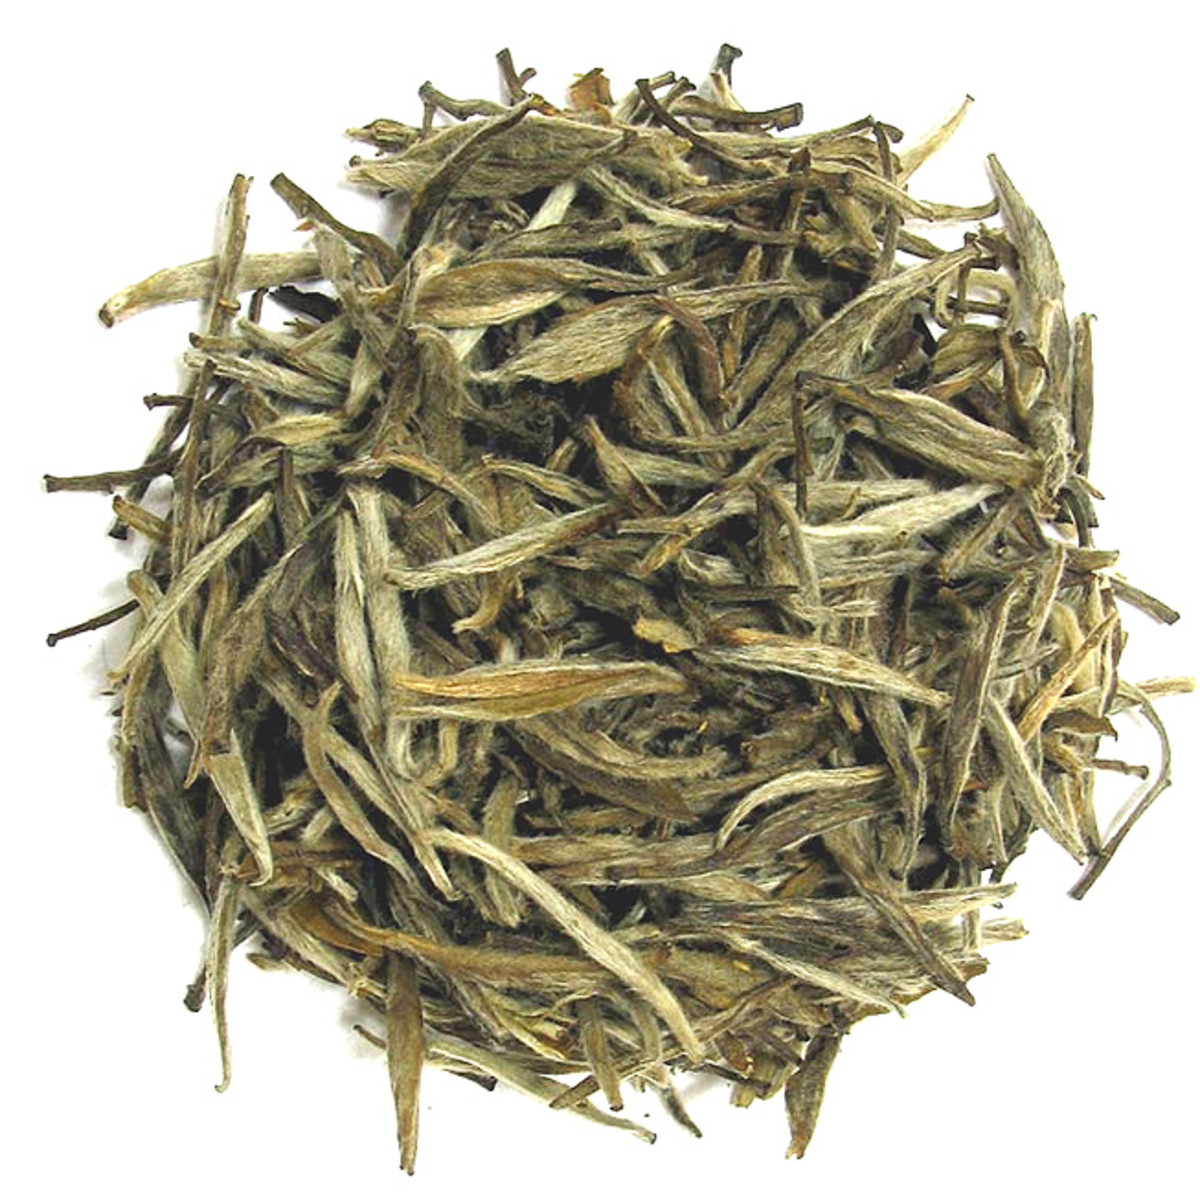 White tea has a light green color when dried, and is covered with a fine, silvery fuzz.